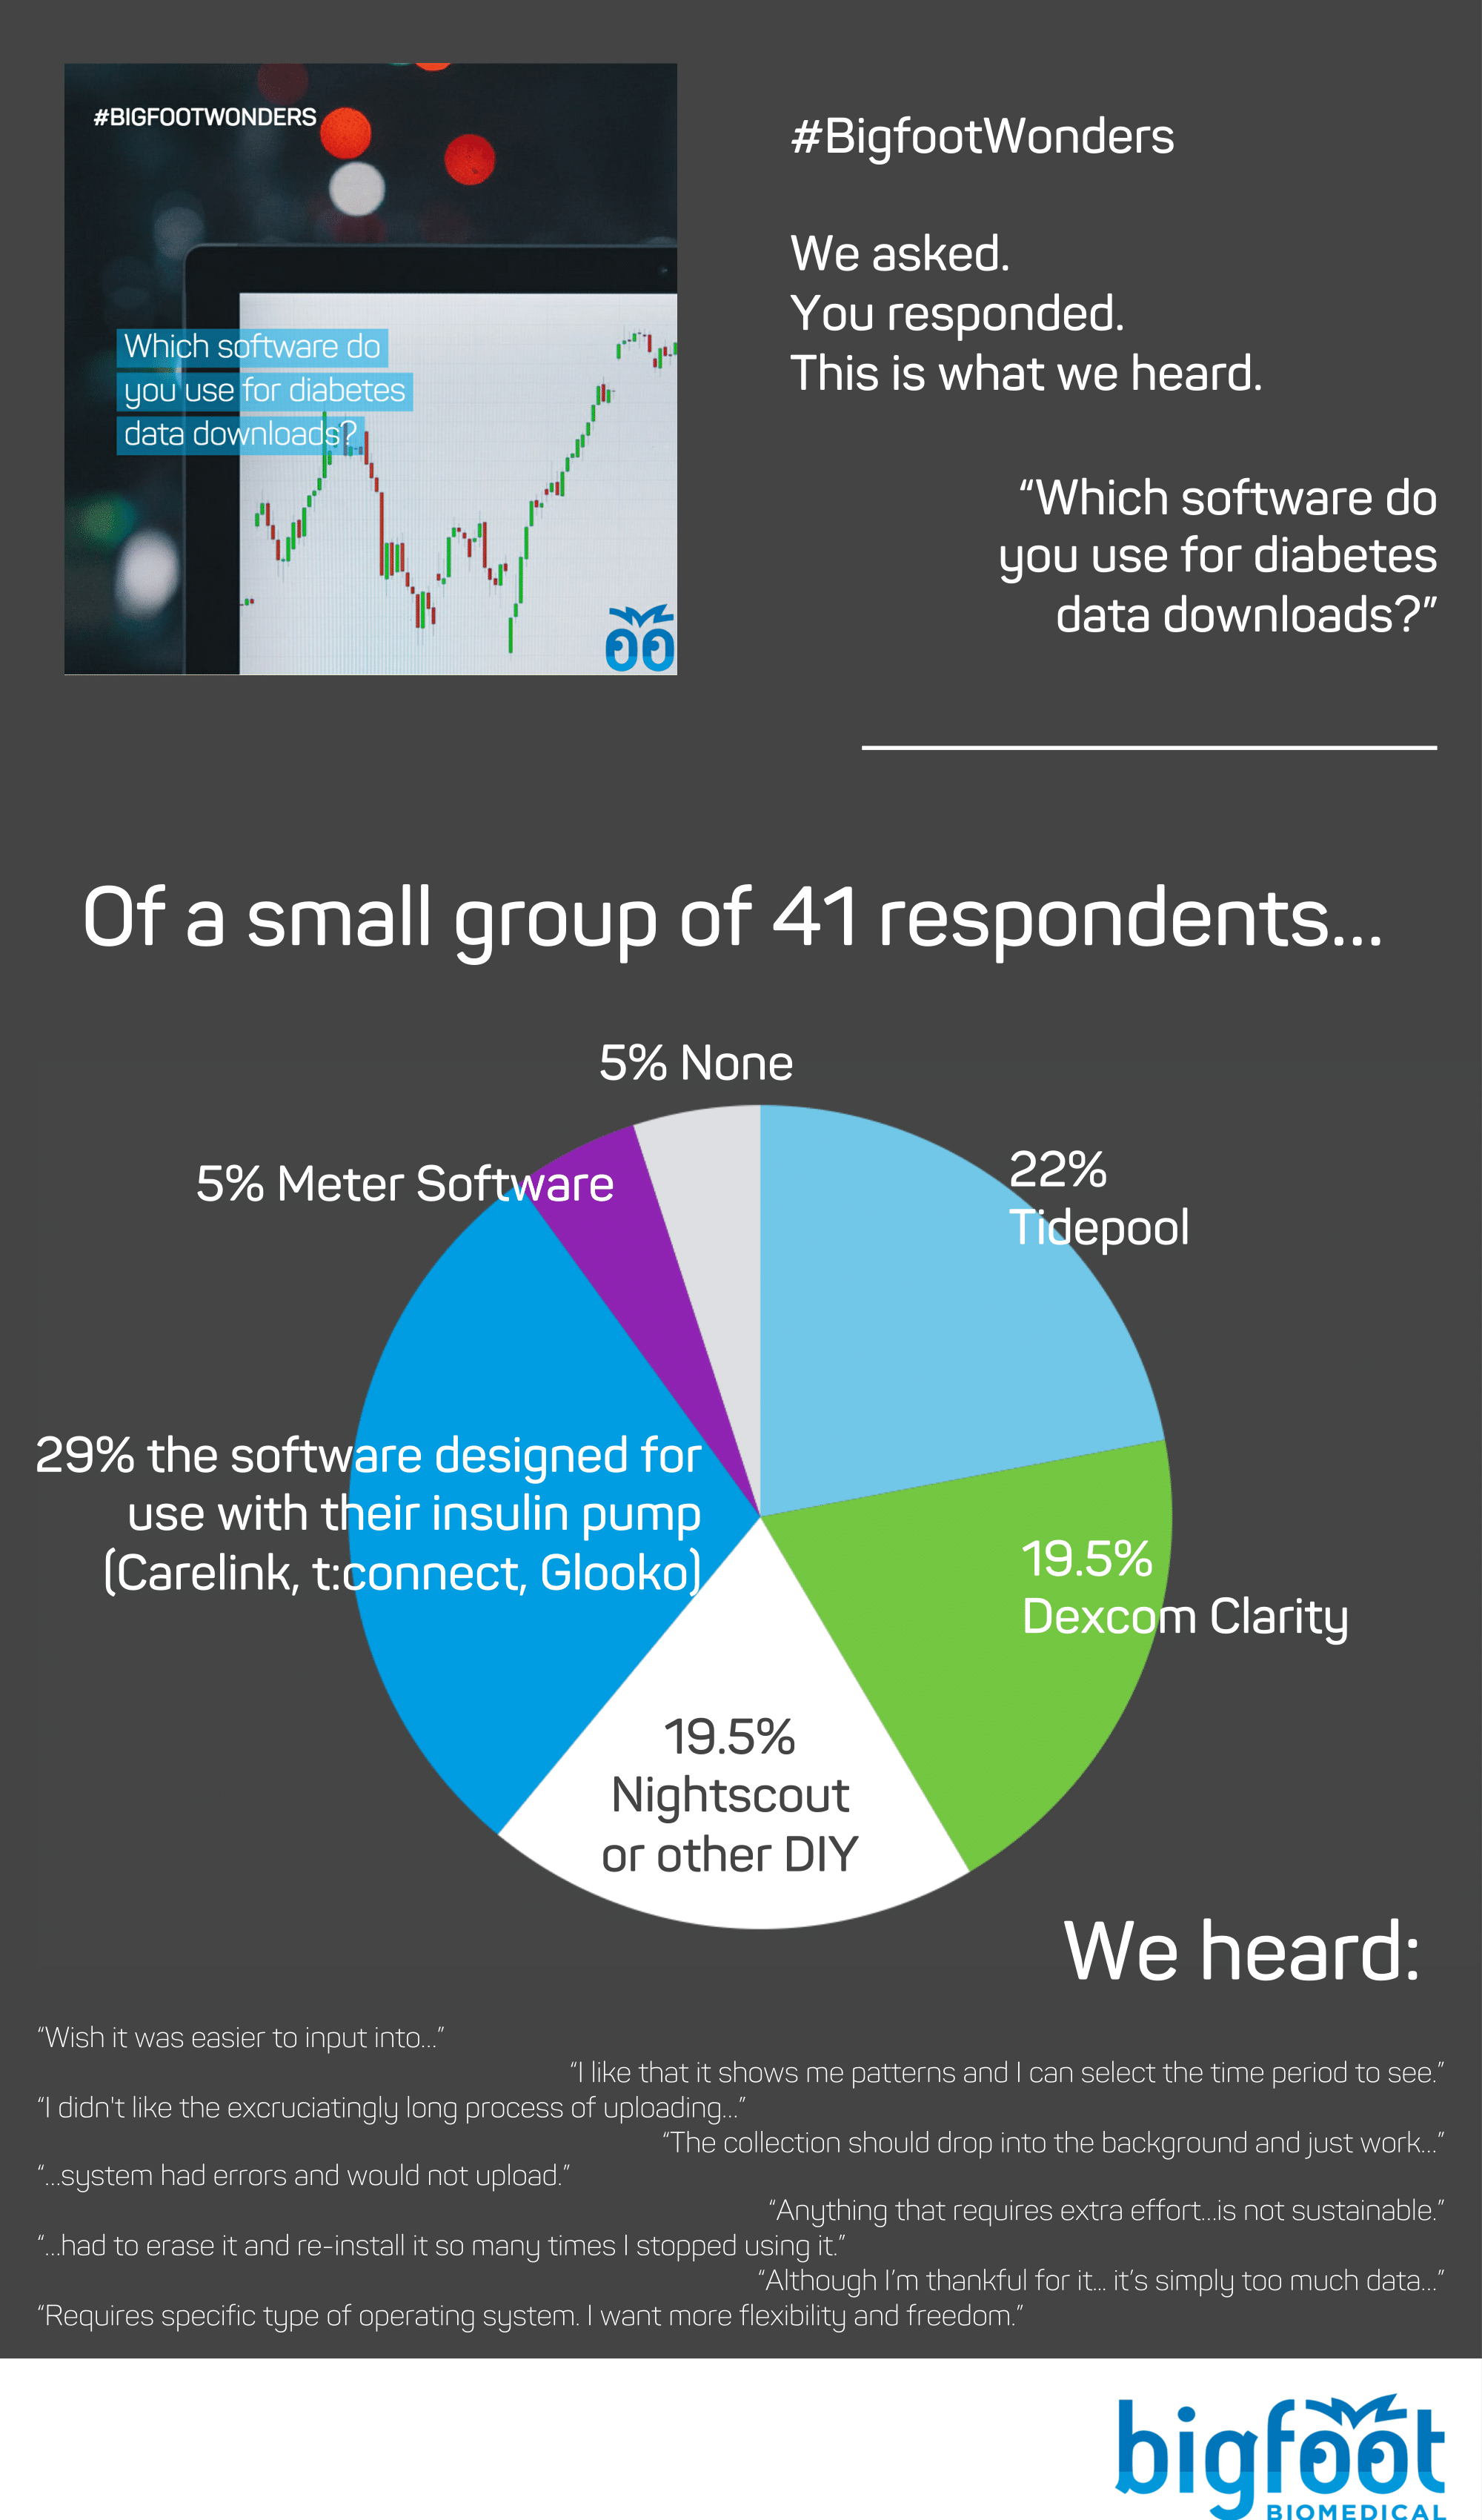 41 people responded. 29% of people use the software designed for use with their insulin pump. Tidepool took 22% of the comments, with DIY (Nightscout, SugarMate, xDrip) and Dexcom Clarity coming in right behind at 19.5% each.